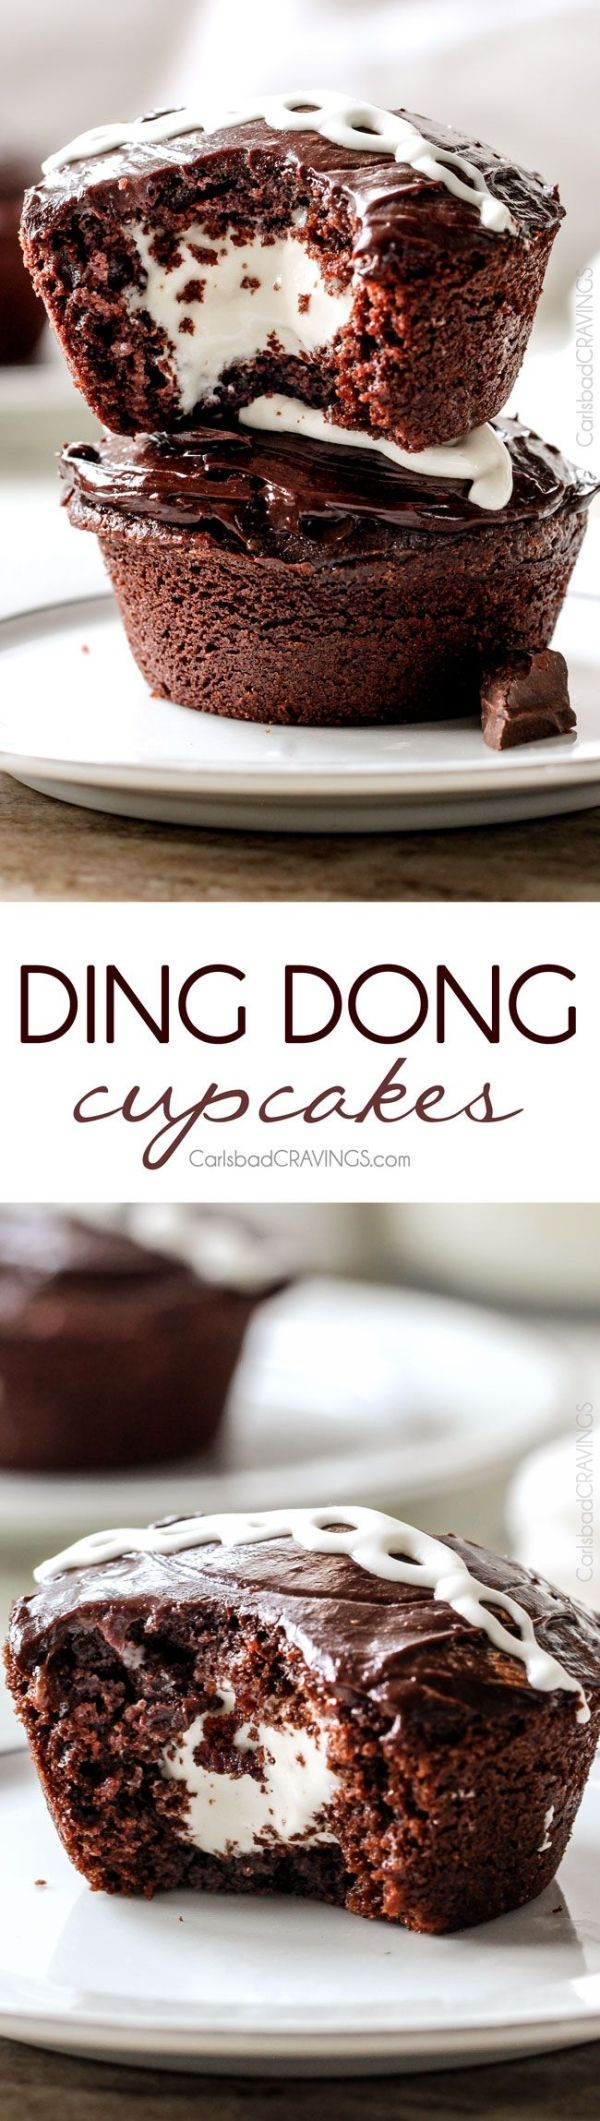 Ding Dong Cupcakes are a rich, moist chocolate cupcake stuffed with creamy marshmallow filling and smothered in a silky chocolate ganache! You will never want to buy Ding Dongs from the store again! by Sharice Best